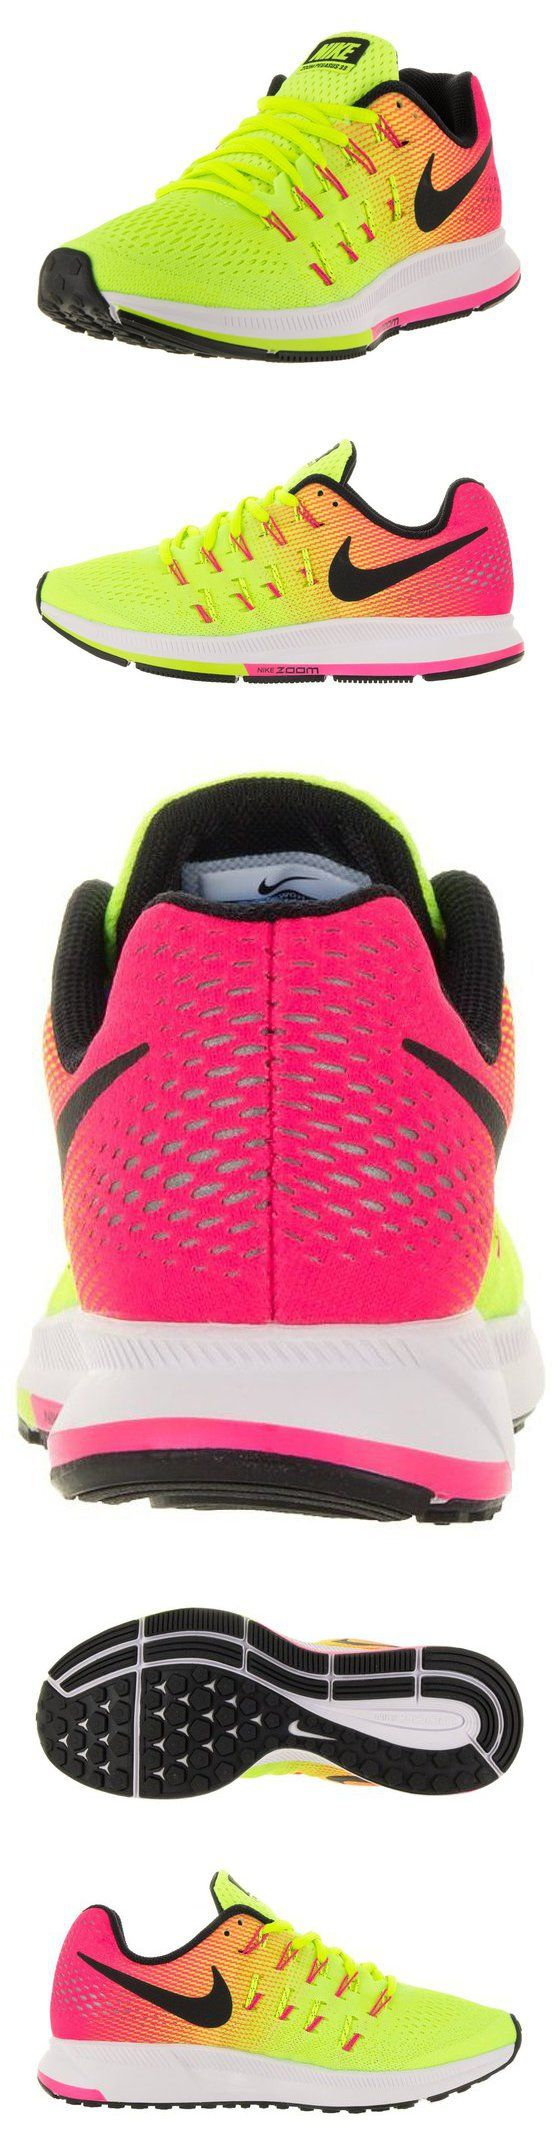 $110 - Nike Women's Air Zoom Pegasus 33 OC Multi Color/Multi Color Running Shoe 9 Women US #shoes #nike #2016